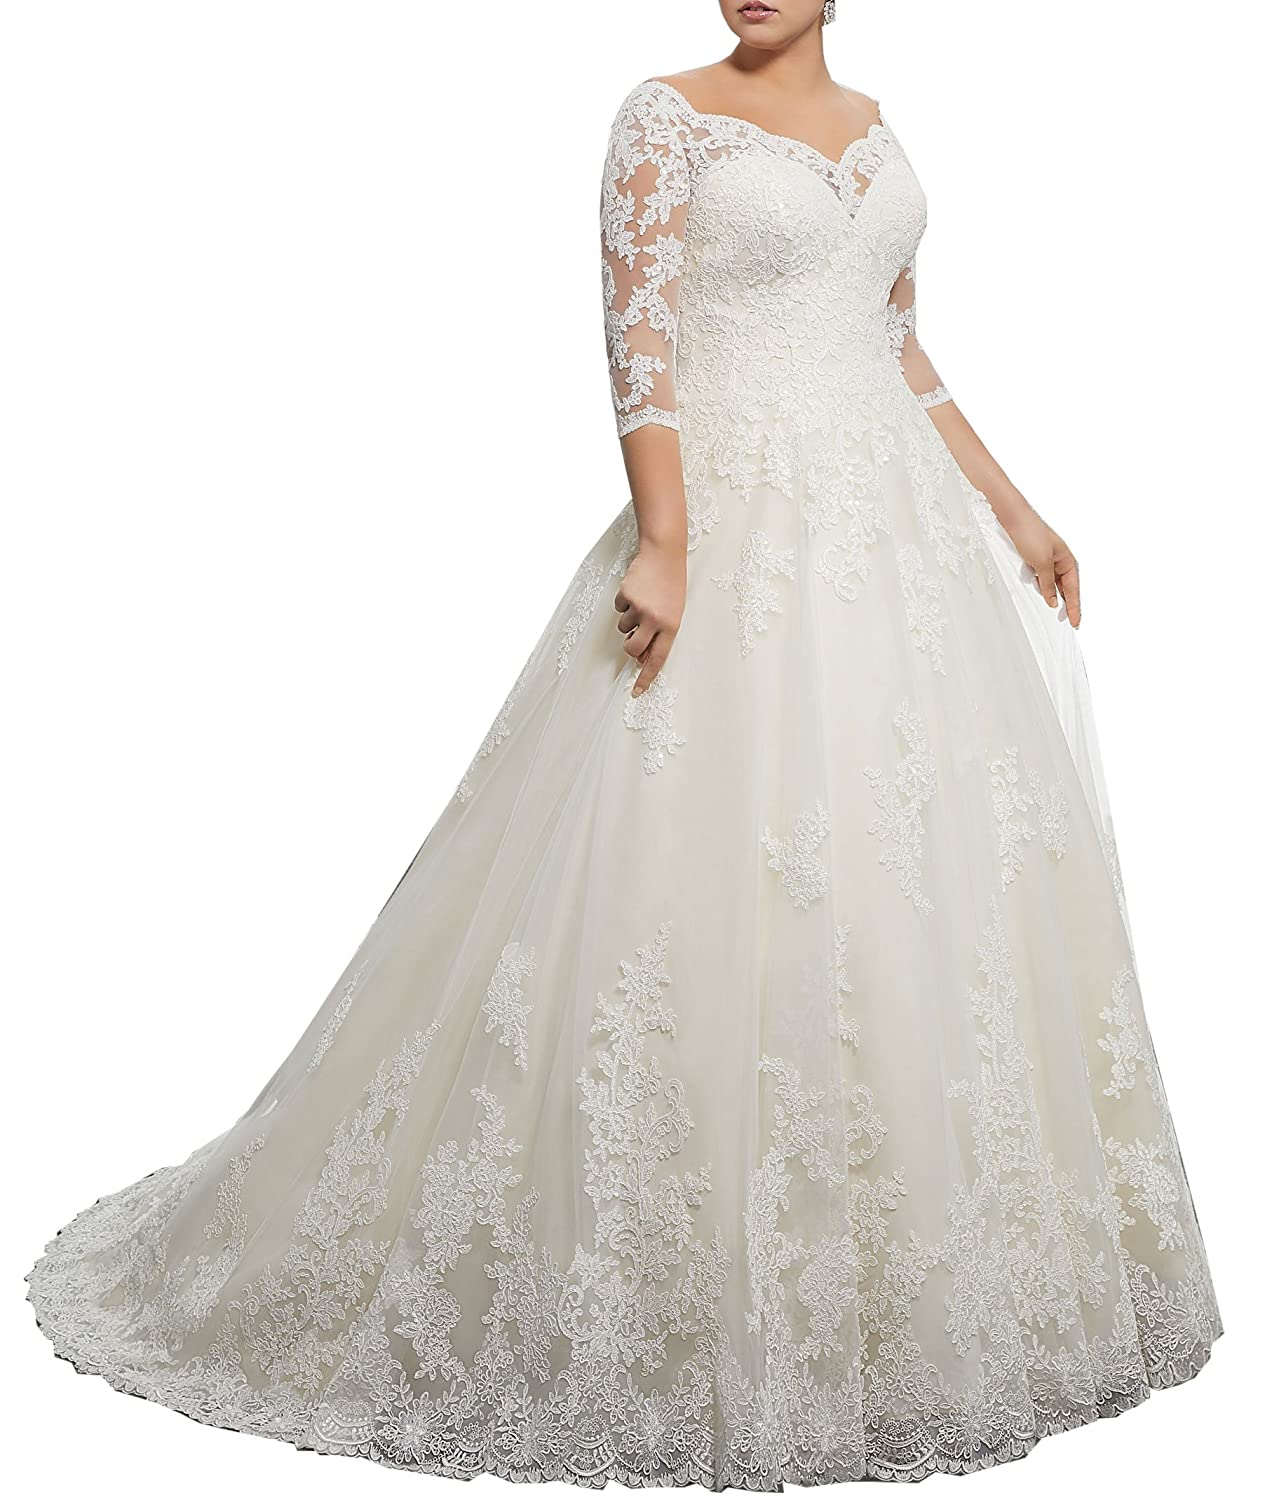 bdca1b0b0cc Vintage Plus Size Wedding Ball Gown Attention  The Price Does Not Include  Any Accessories Like The Veils Please Do Refer to Our Attached Size Chart  On The ...